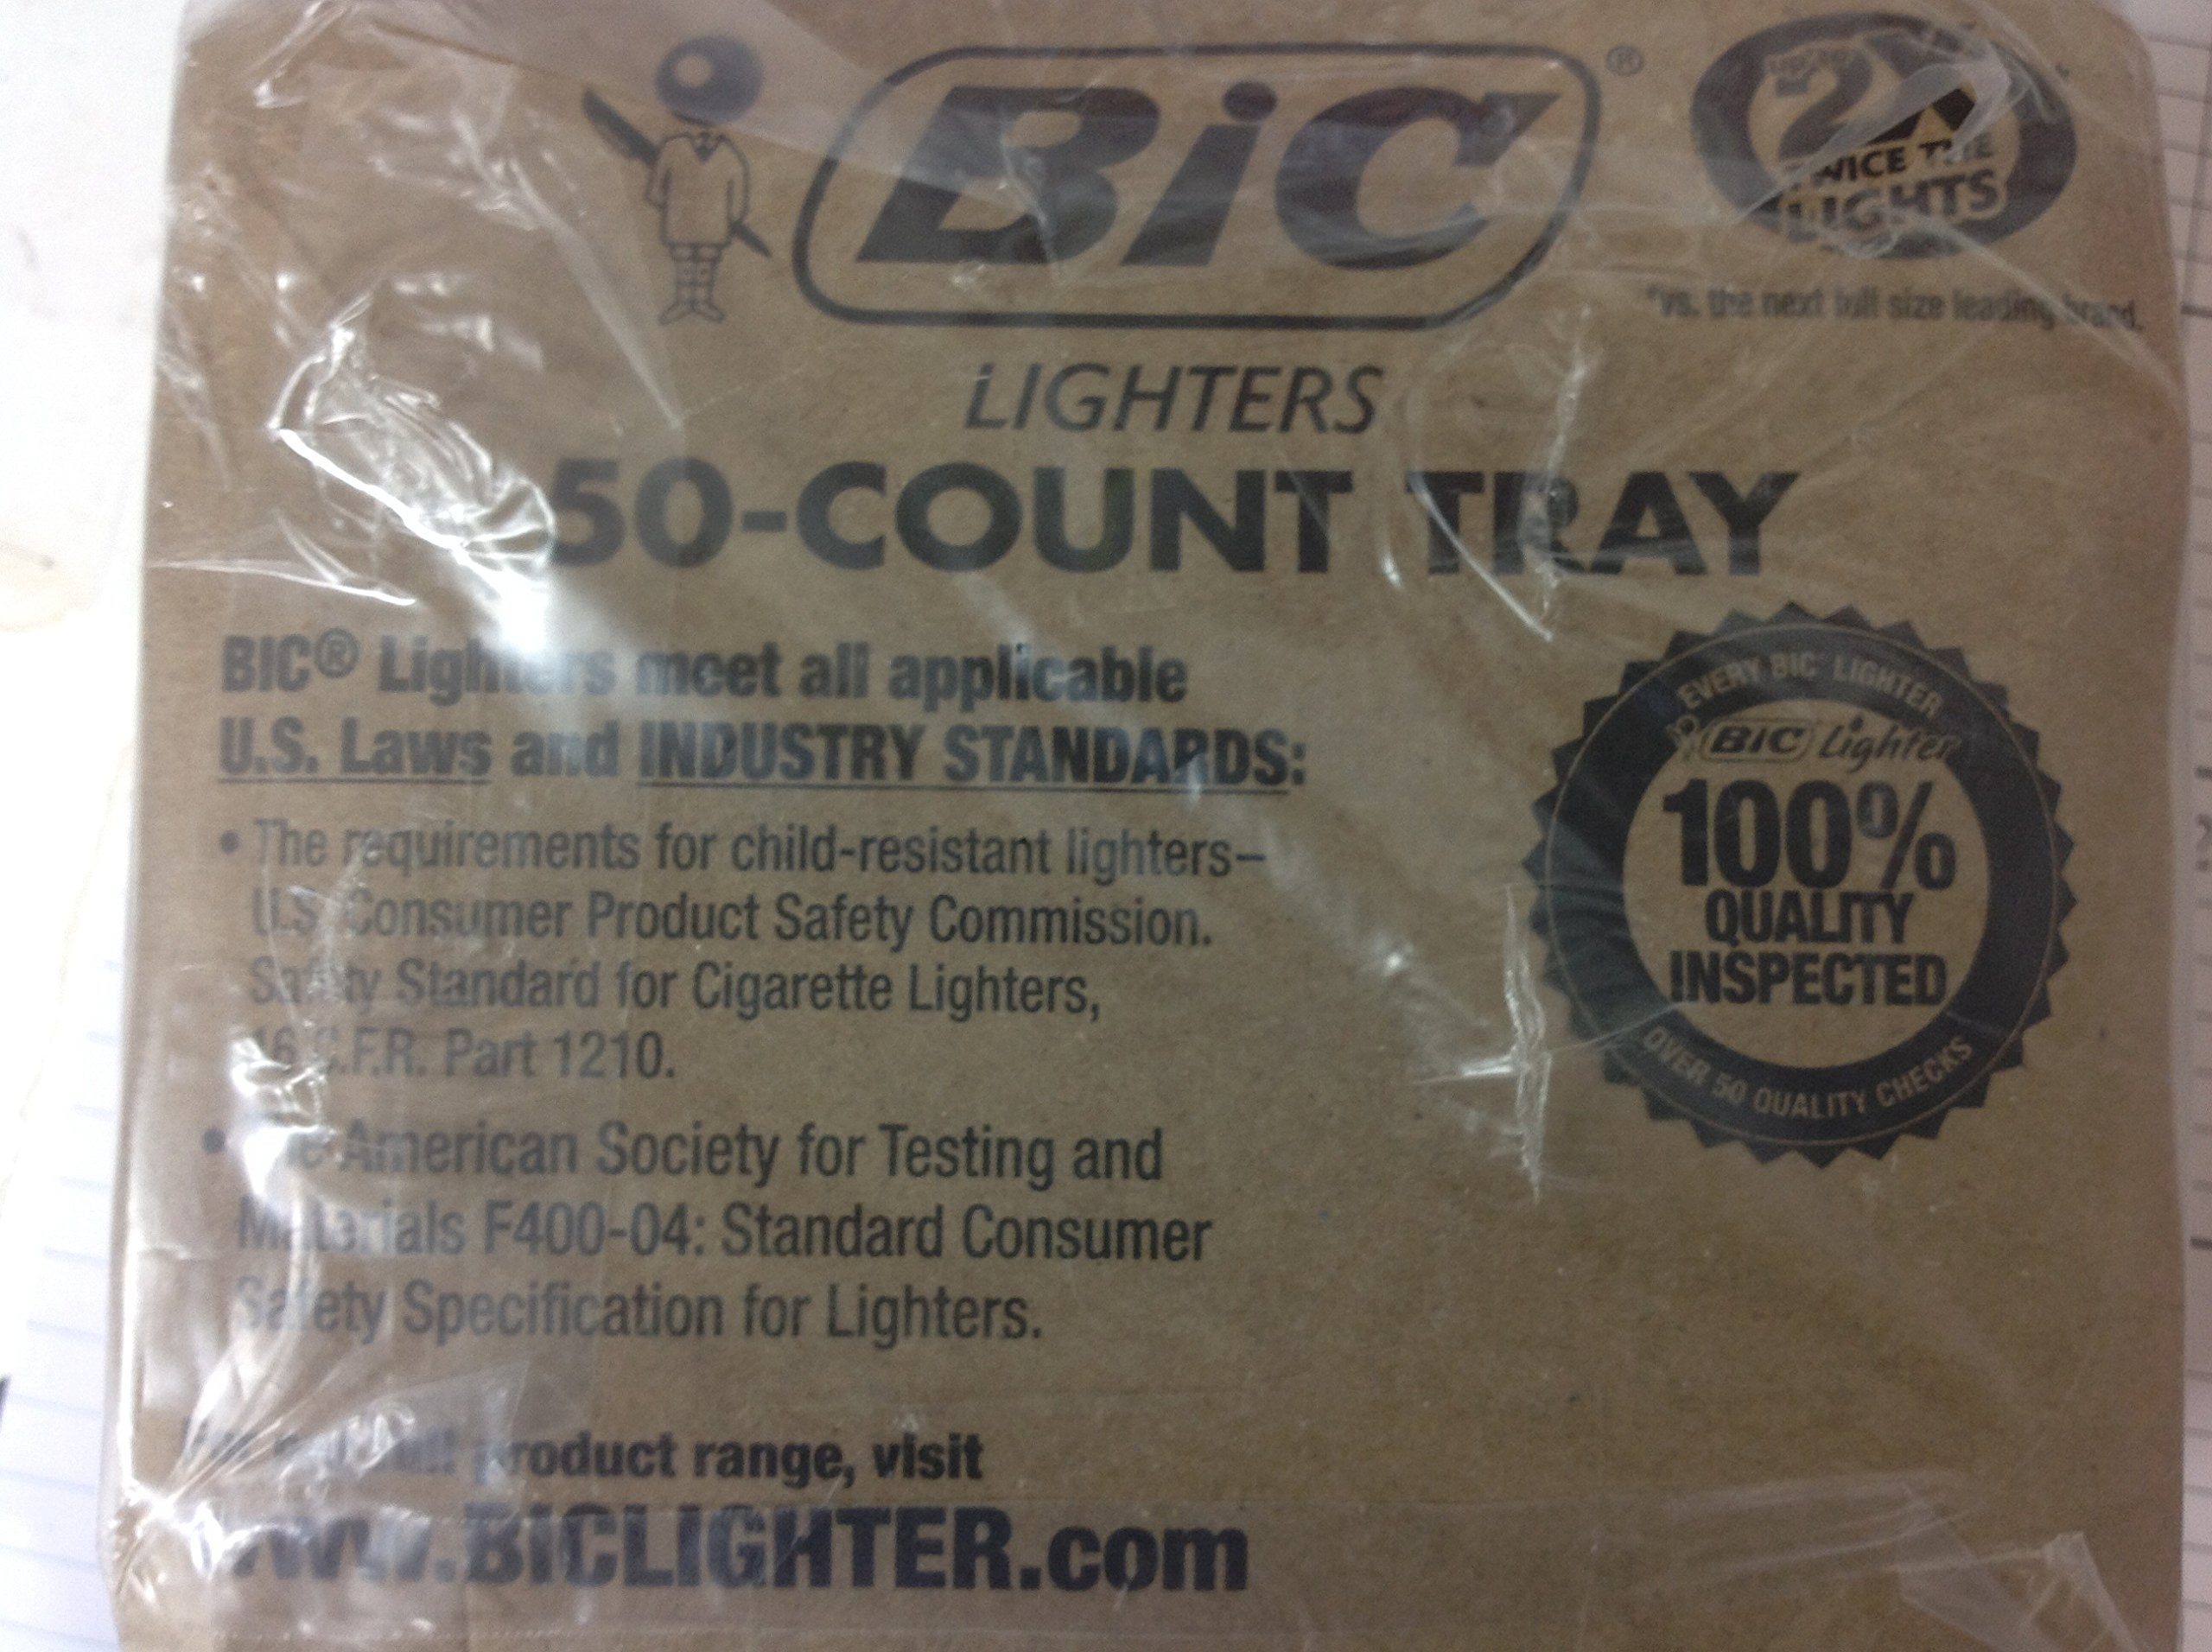 BIC Classic Lighter 50ct Tray Regular Lighter